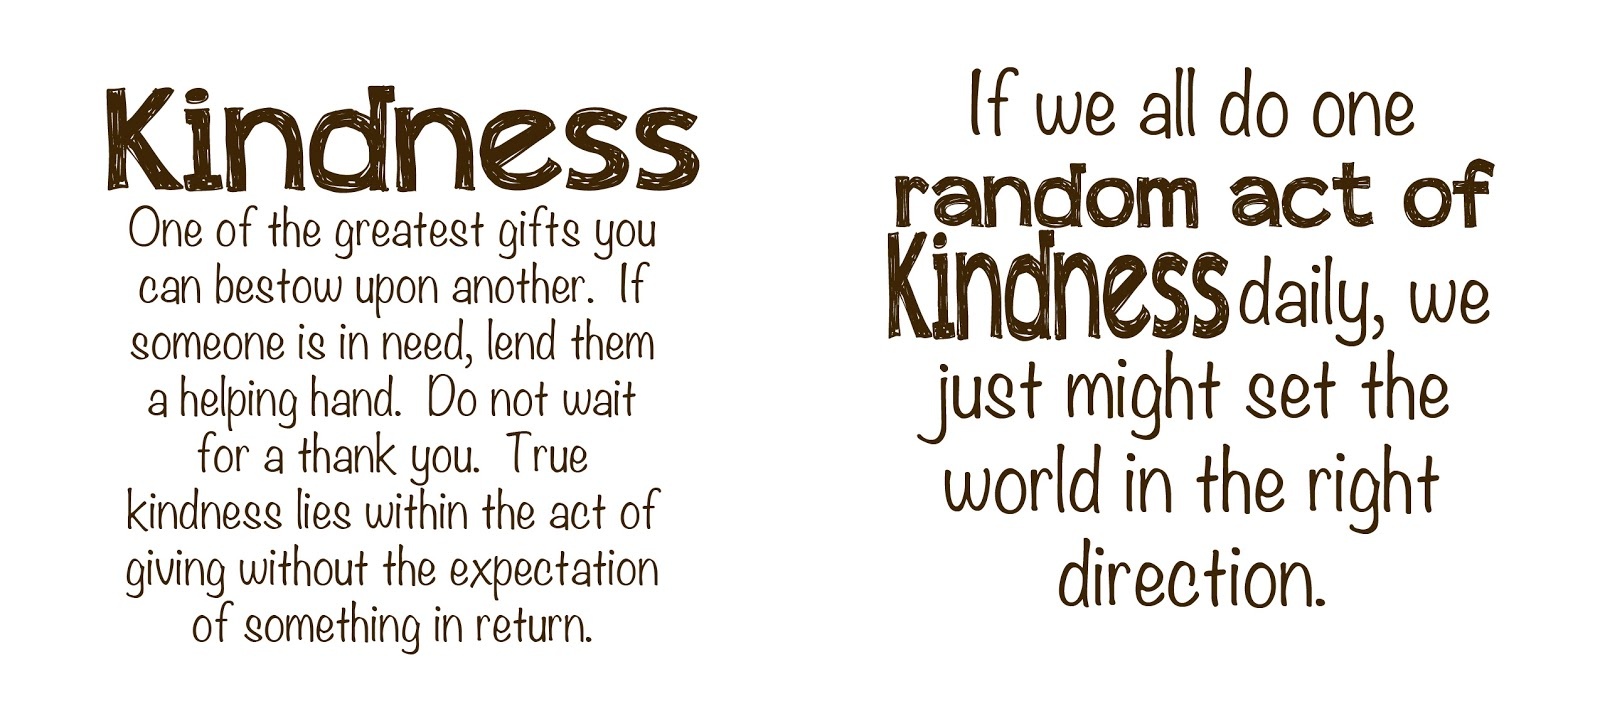 Quotes Kindness Shyloh Belnap Today On Good Things Utah Kindness Banner